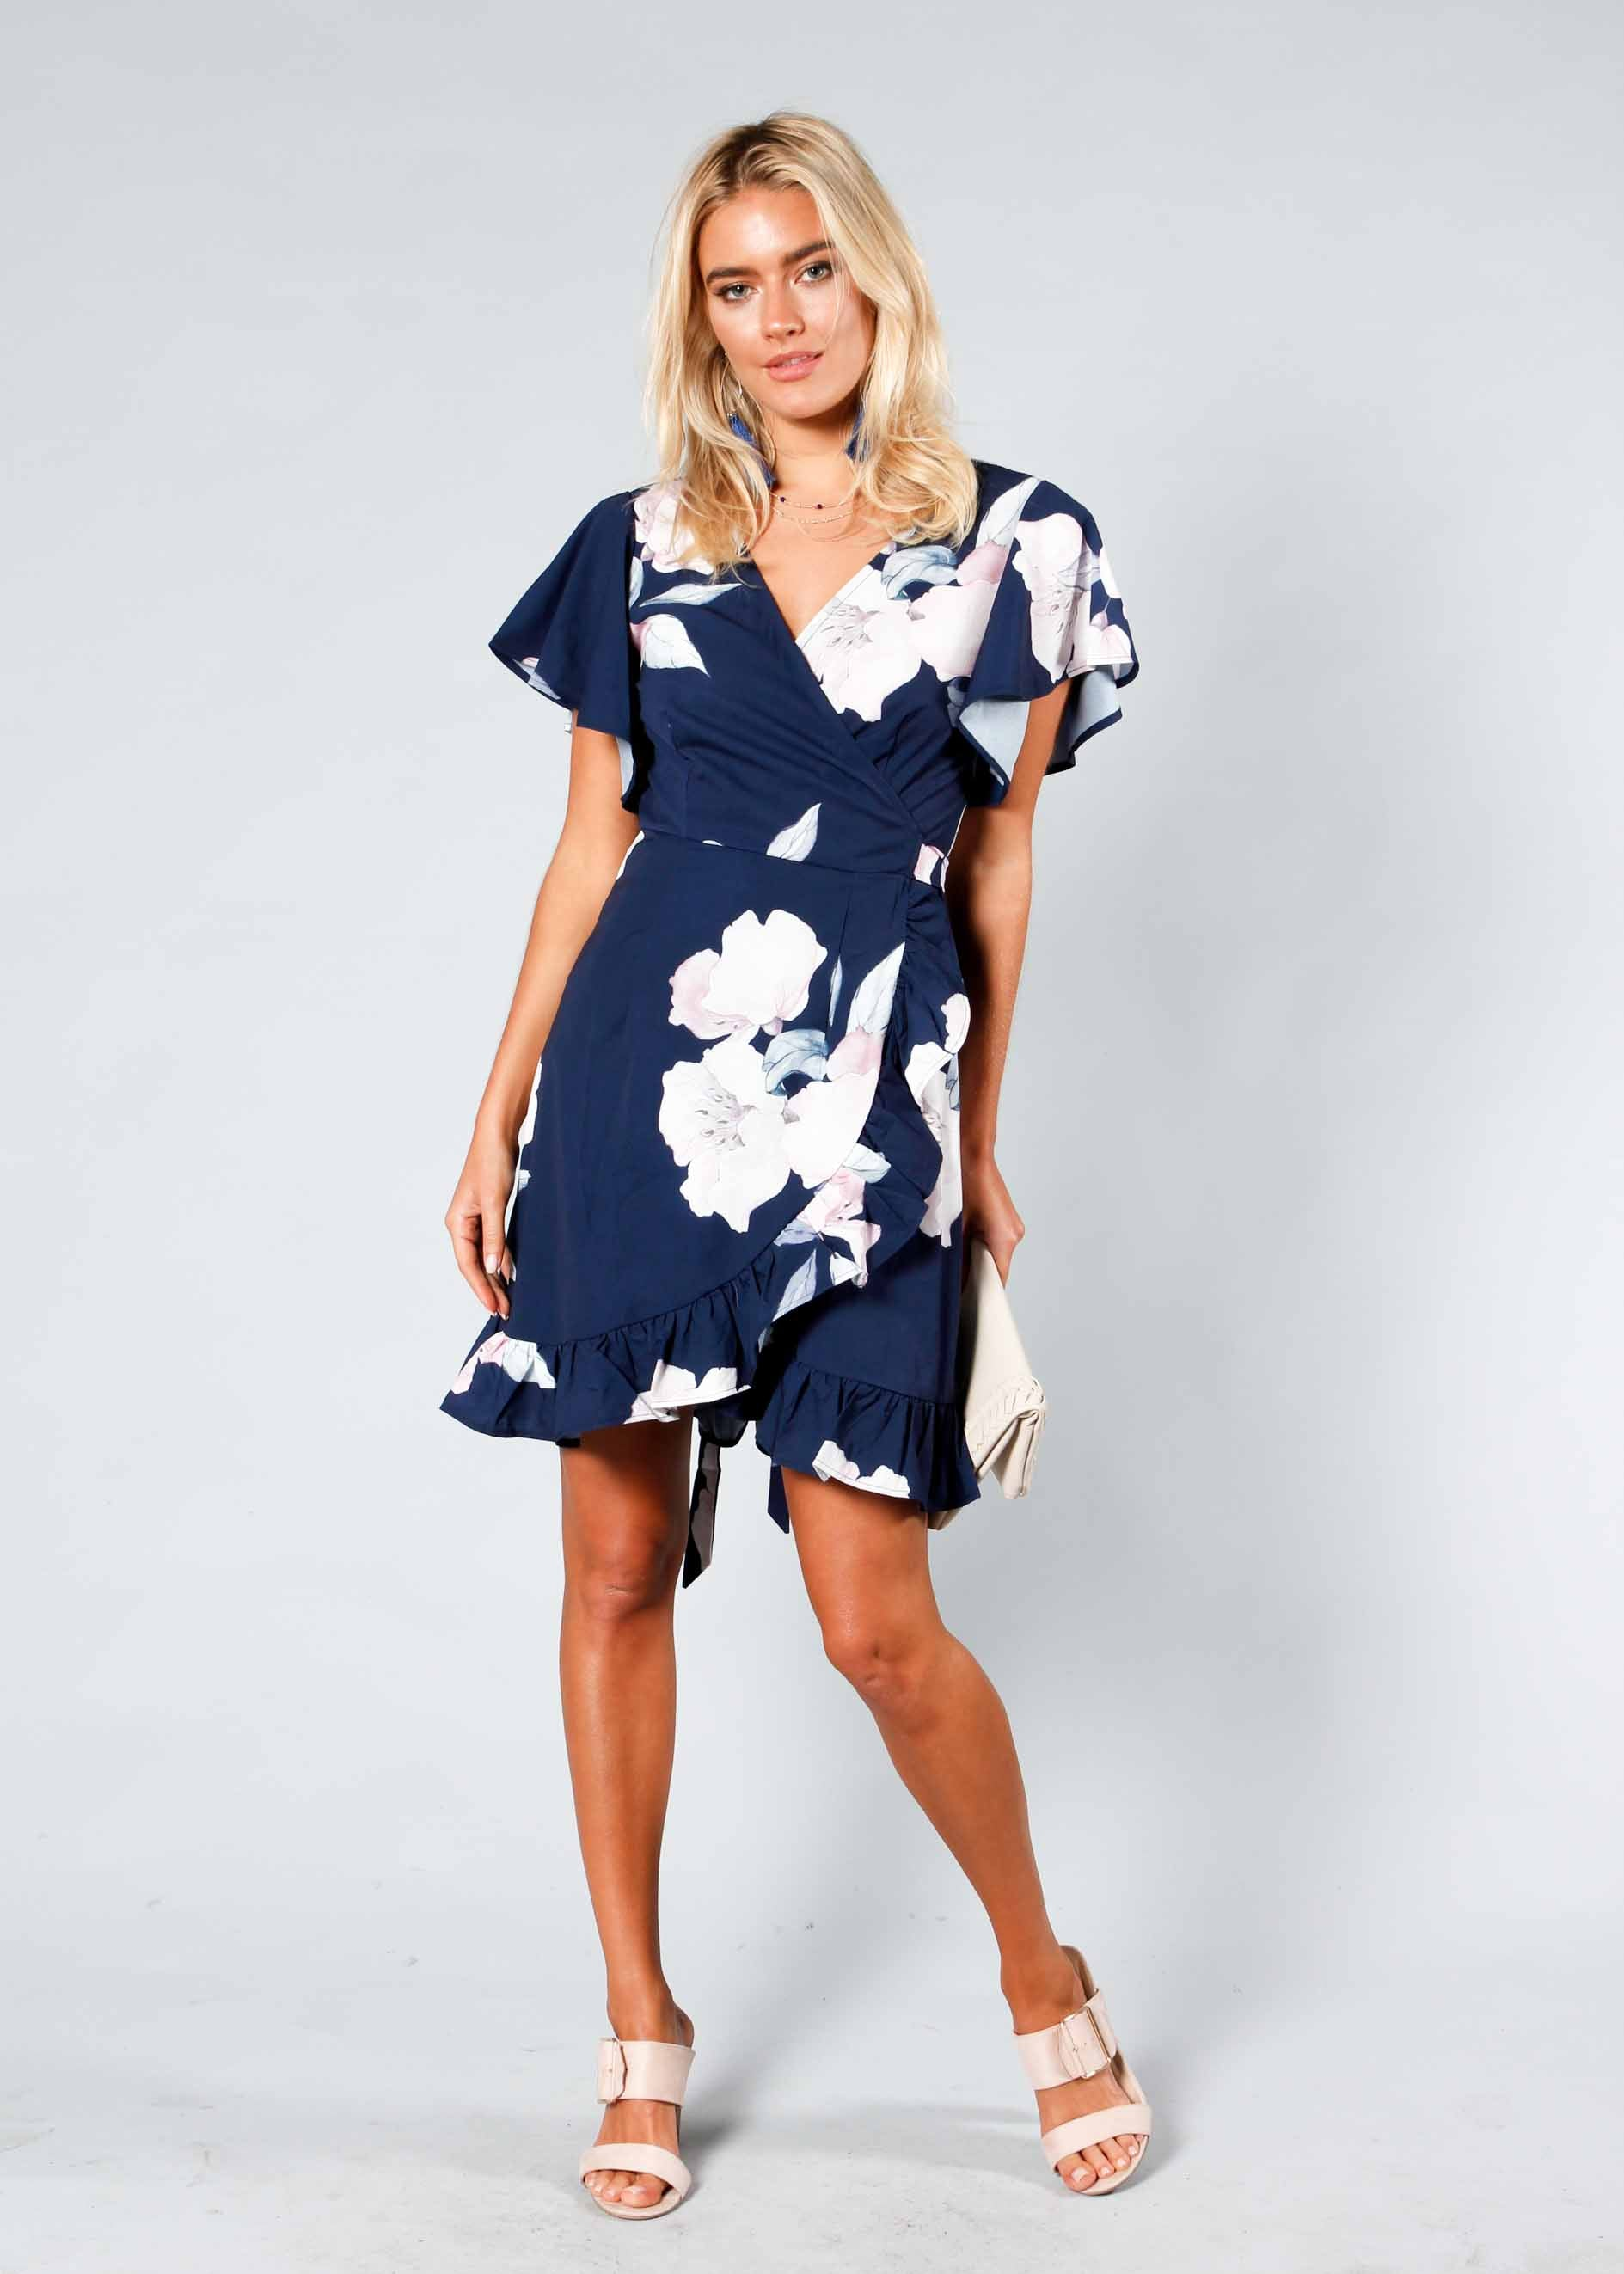 Beyond Belief Wrap Dress - Navy Floral